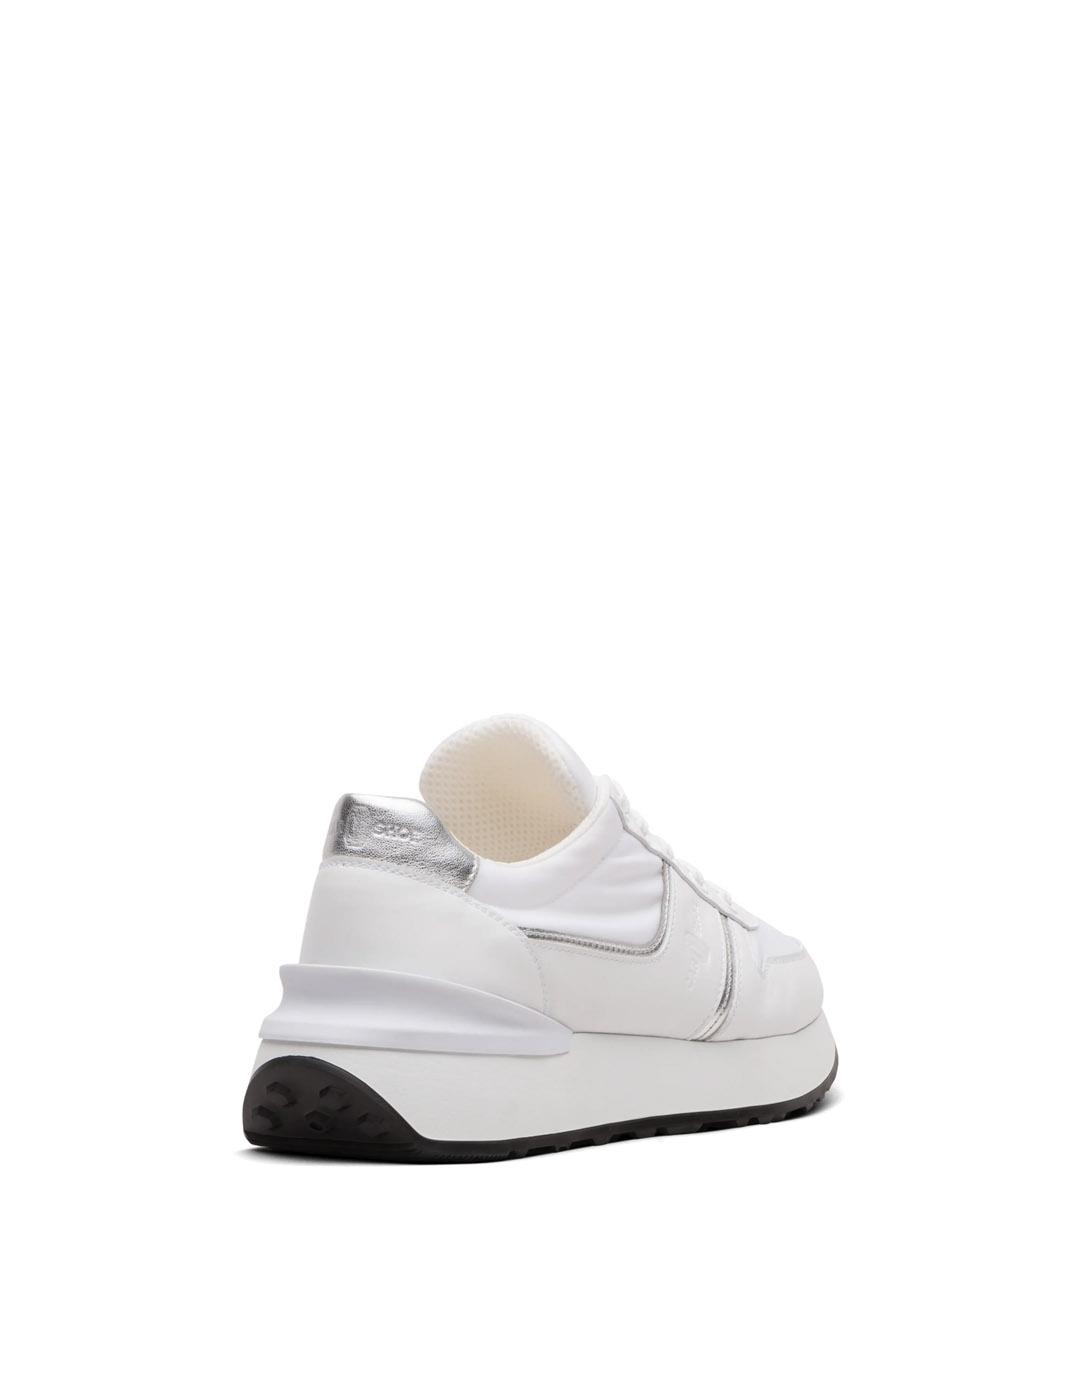 Sneaker Car shoe blancas Calzature Donna Calf and Nylon